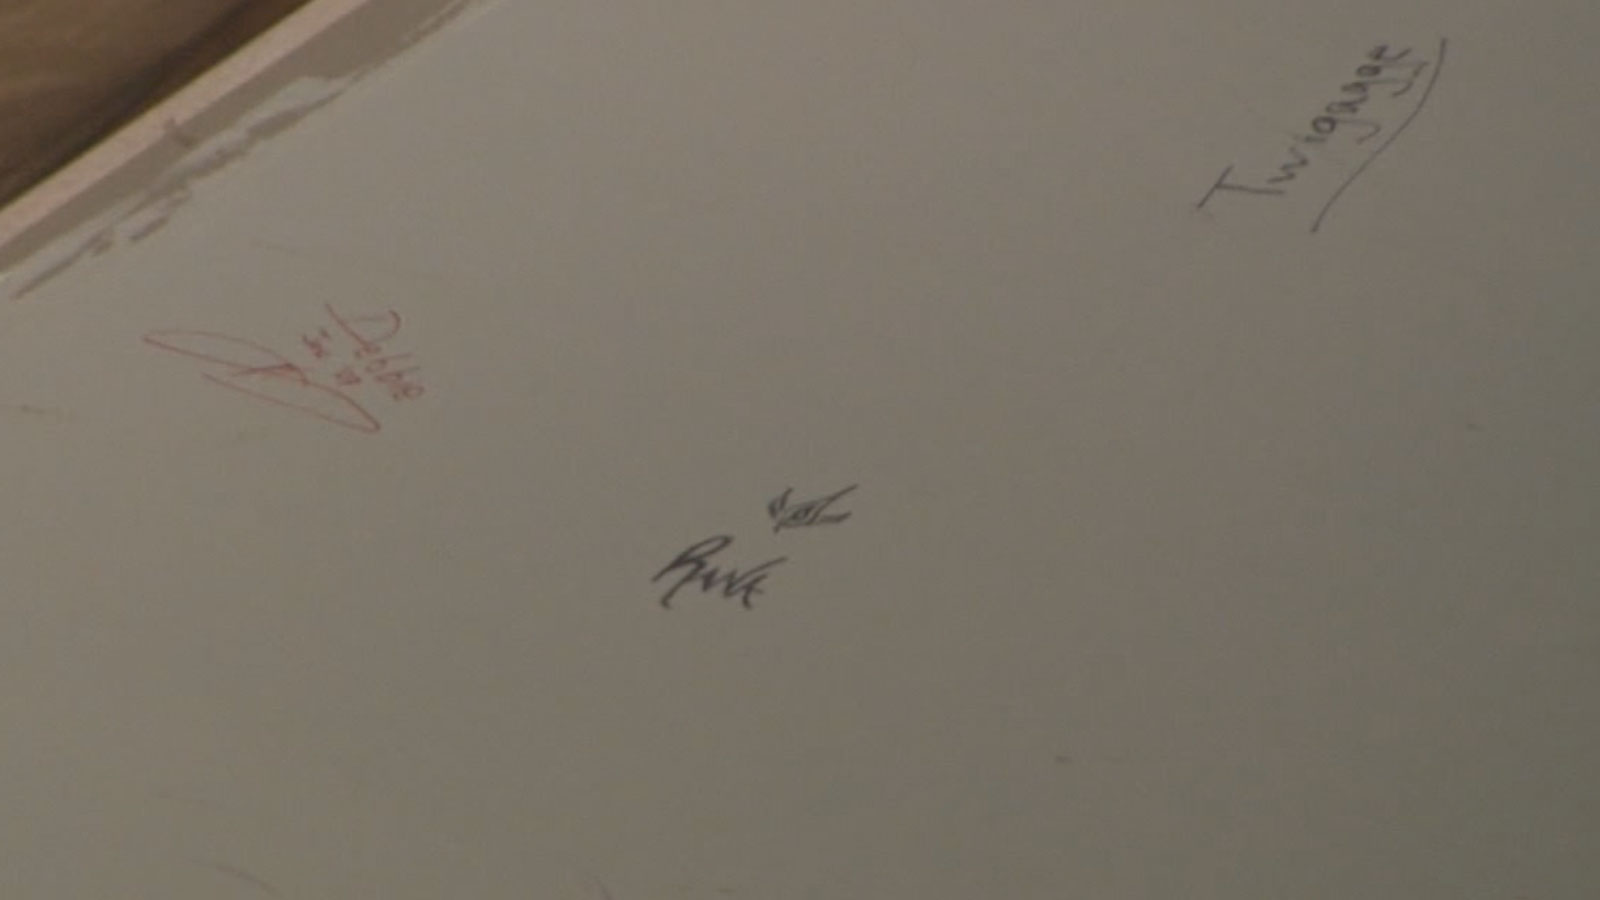 Guests would sign the walls of the Jessup Lodge at Sylvan Dale Ranch in Estes Park (credit: CBS)